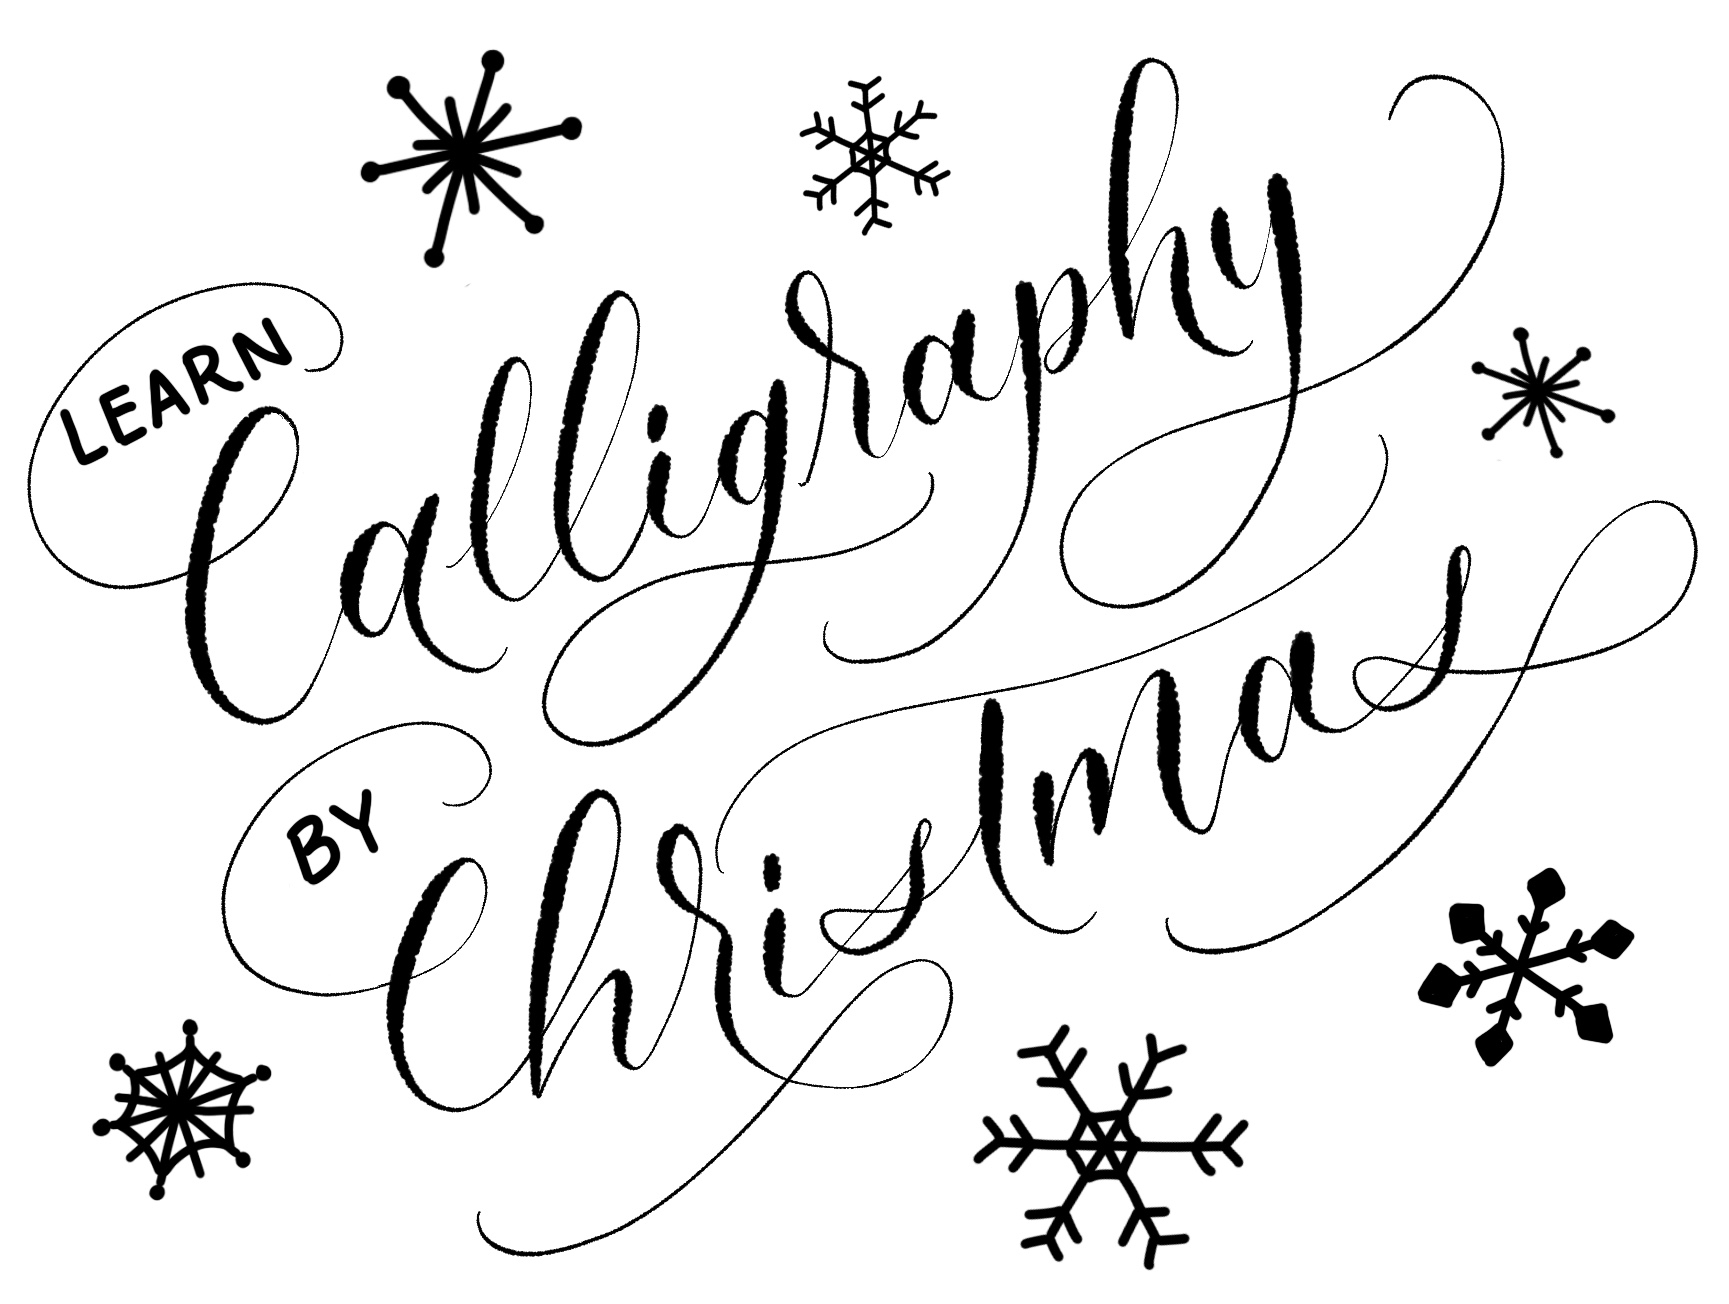 Calligraphy by Christmas (snowflakes).jpg